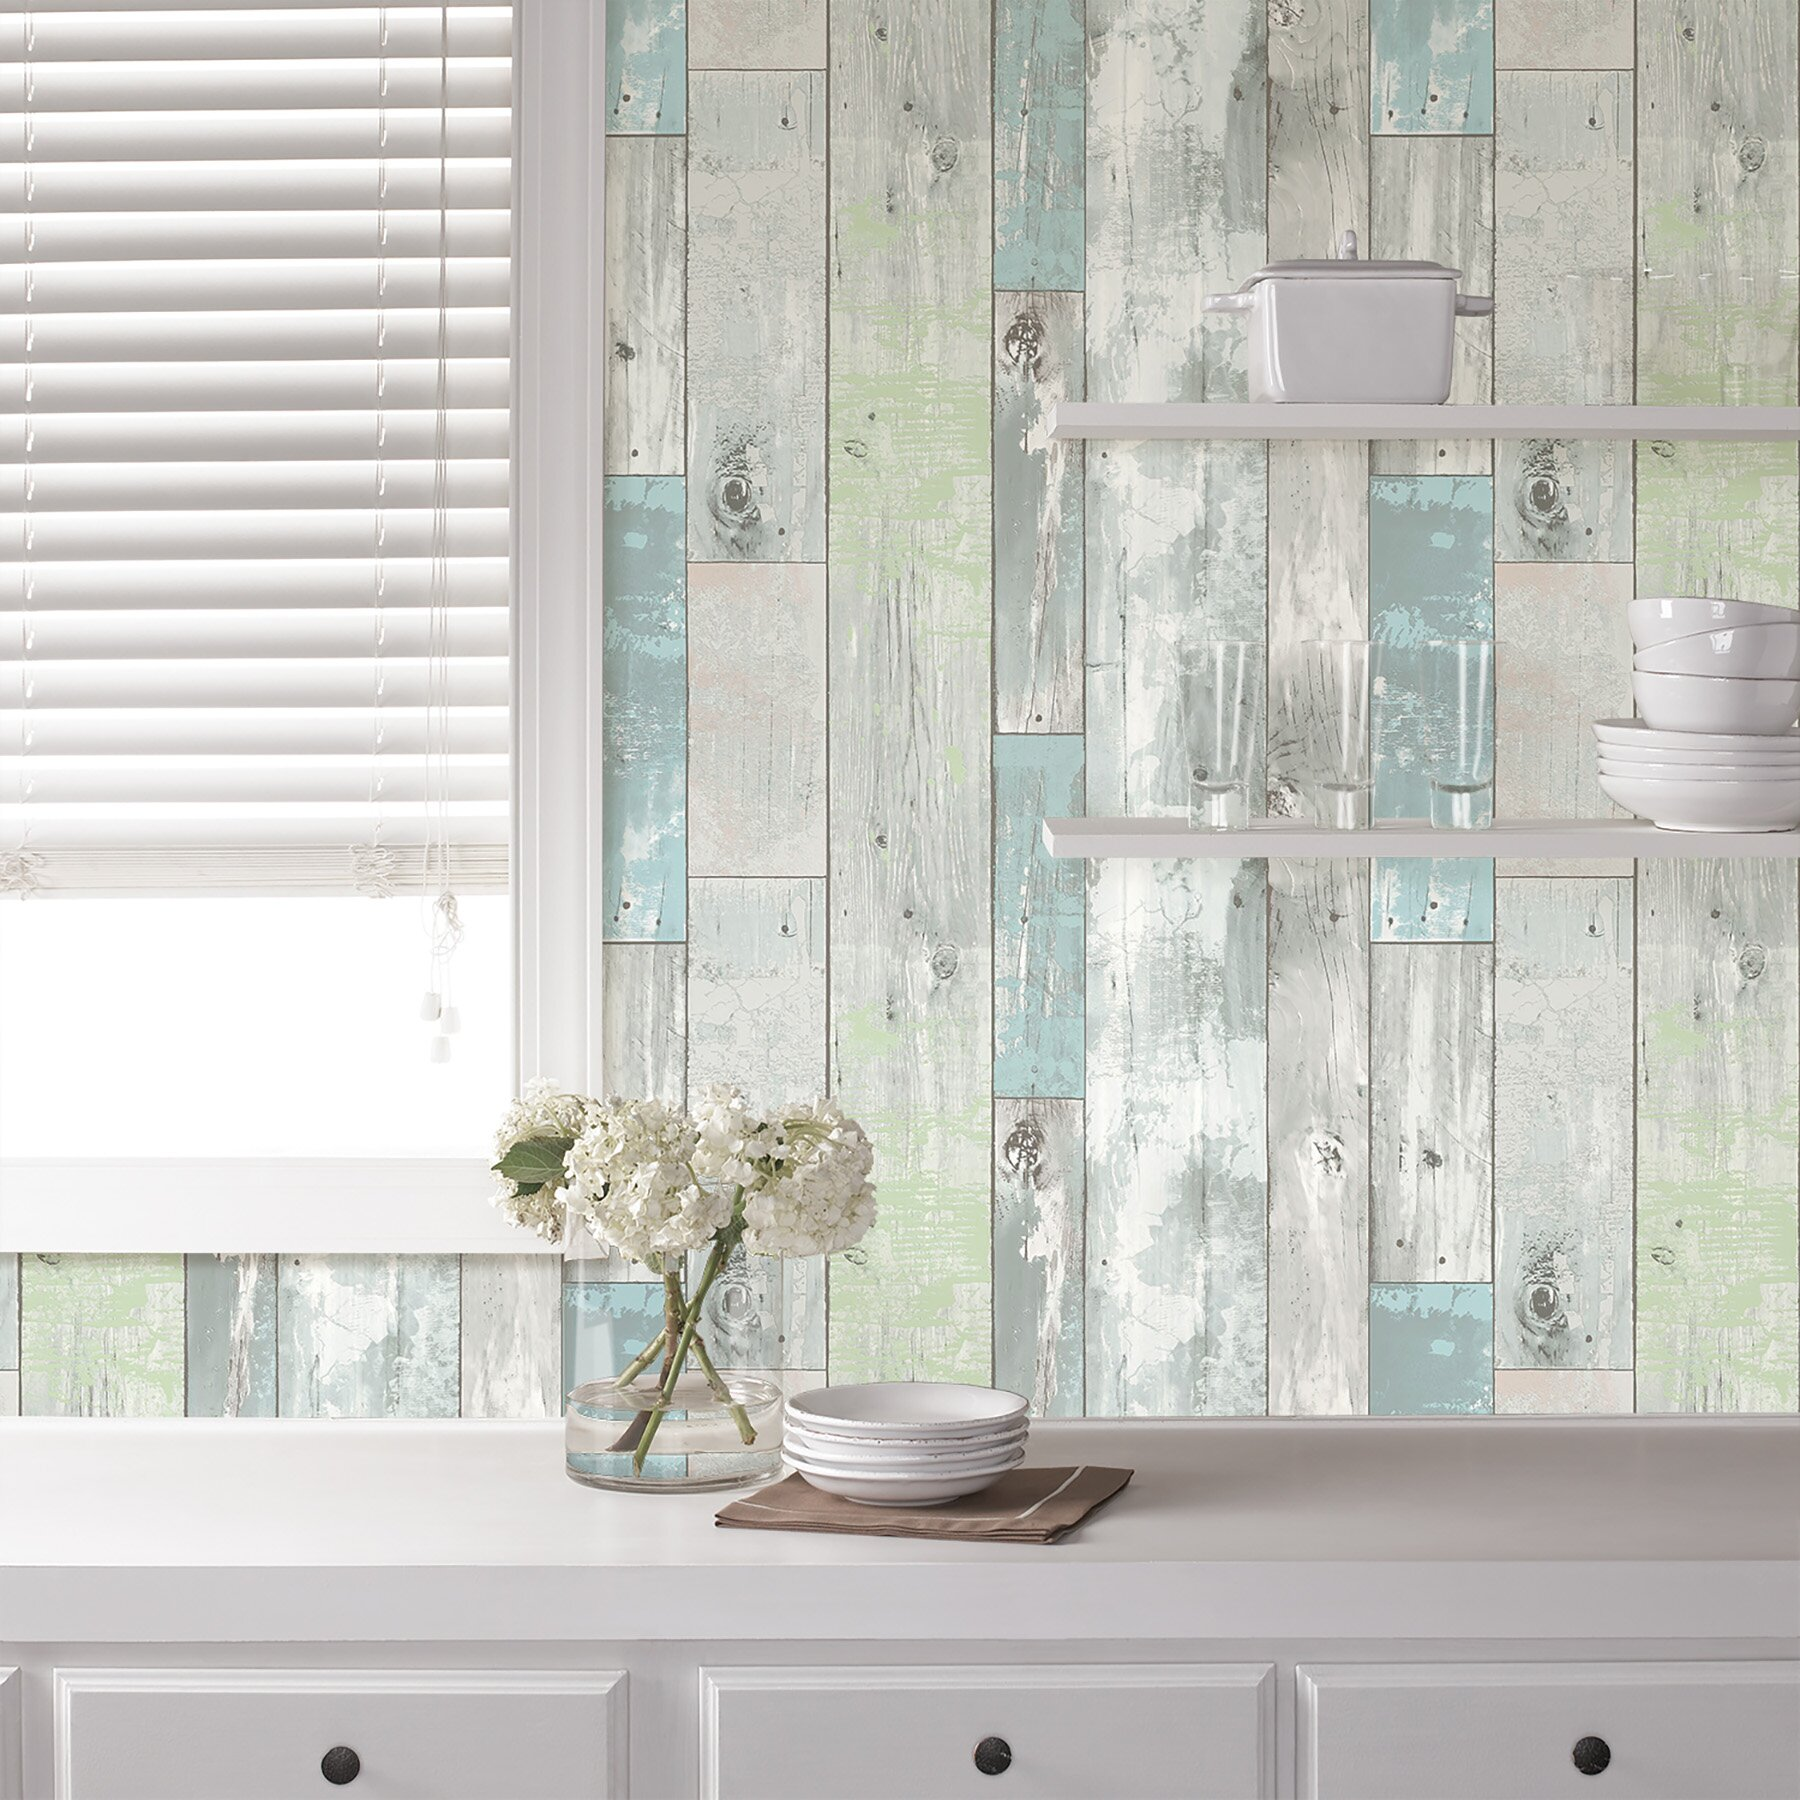 Peel And Stick Wallpaper In Bathroom: Beachwood Peel And Stick Wallpaper